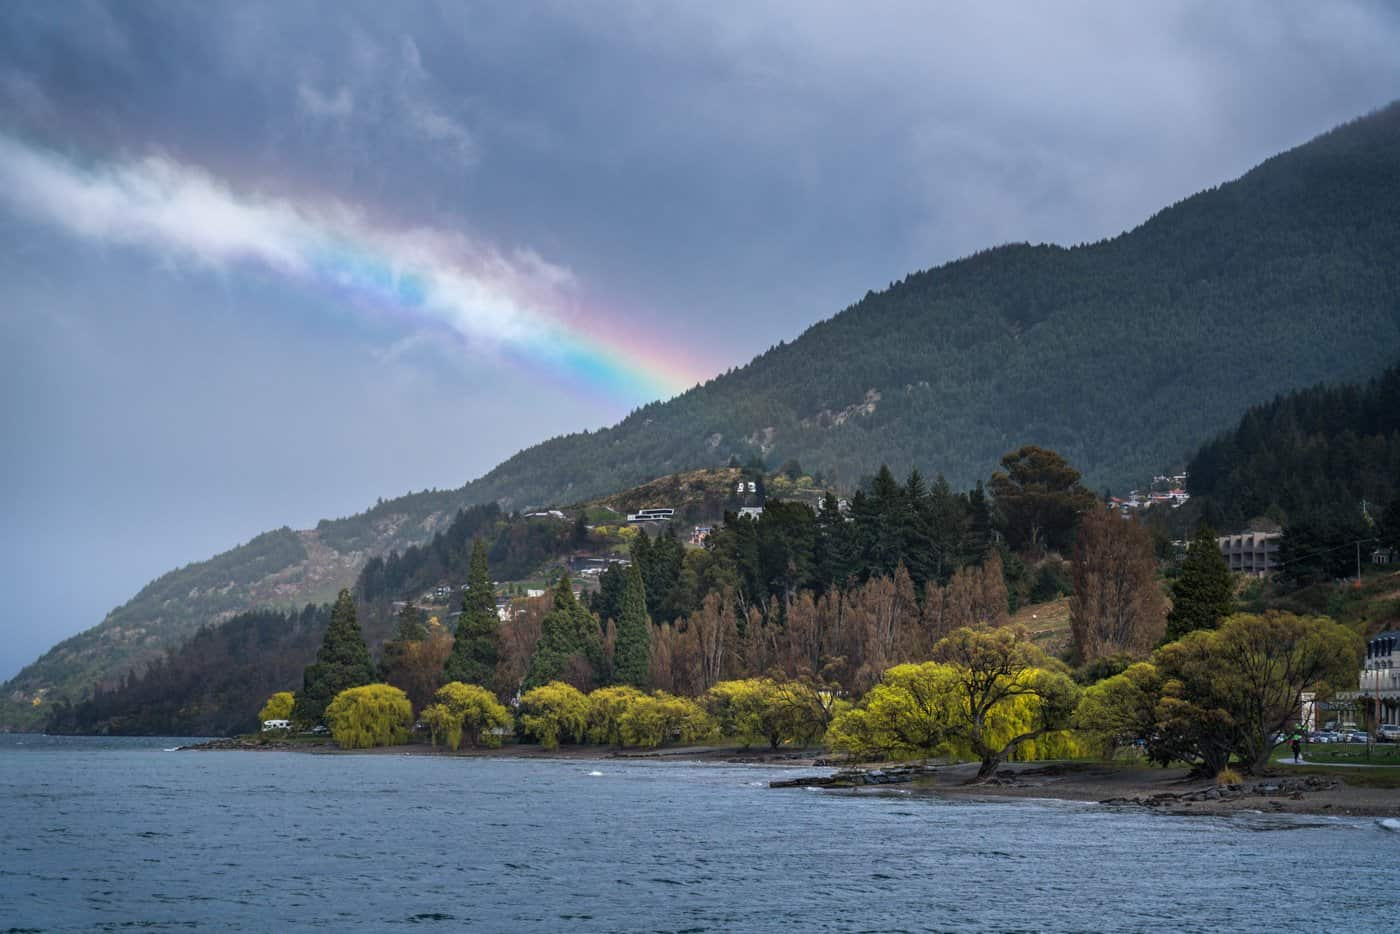 Spring is also the best time to visit New Zealand for rainbows and dramatic skies!